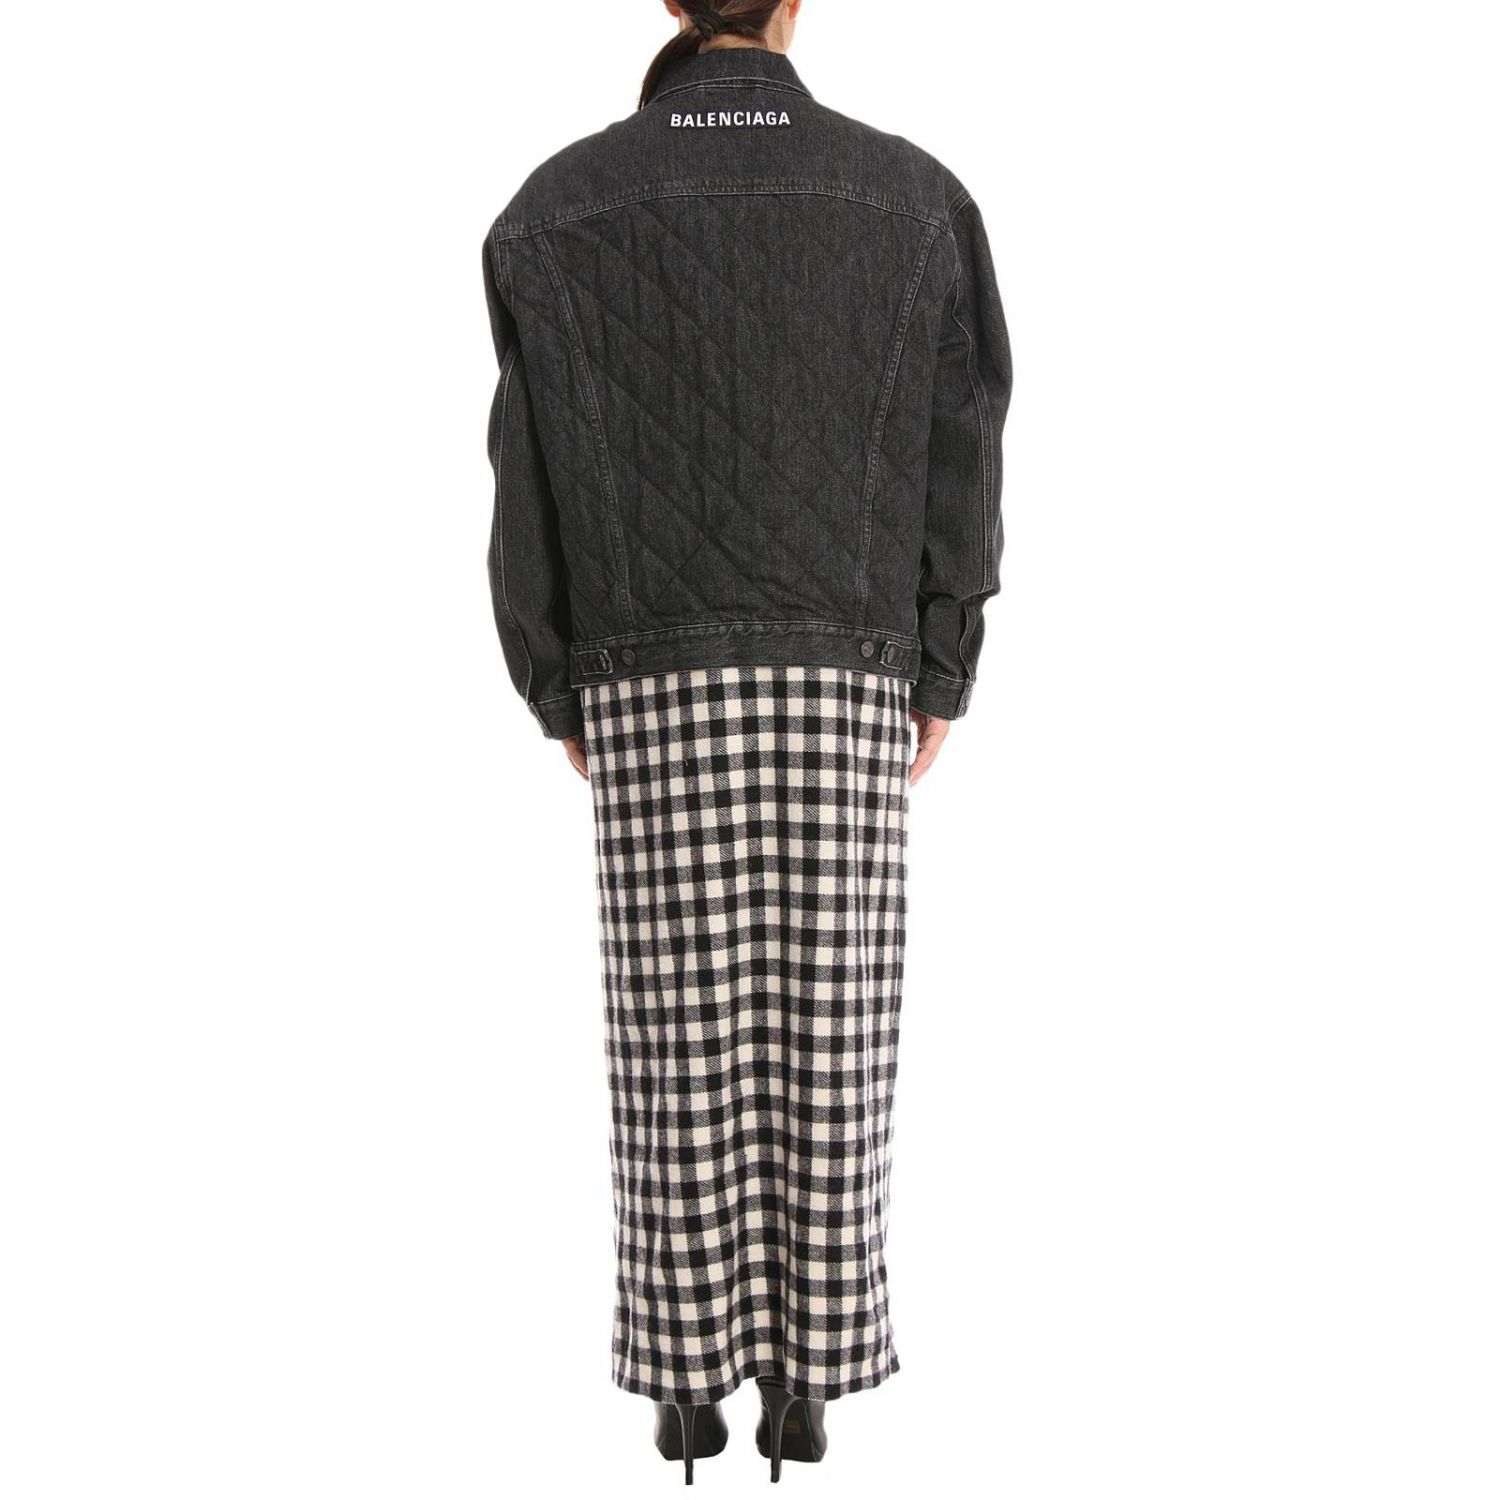 Giubbotto in denim over con maxi plaid check in stile coperta nero 3